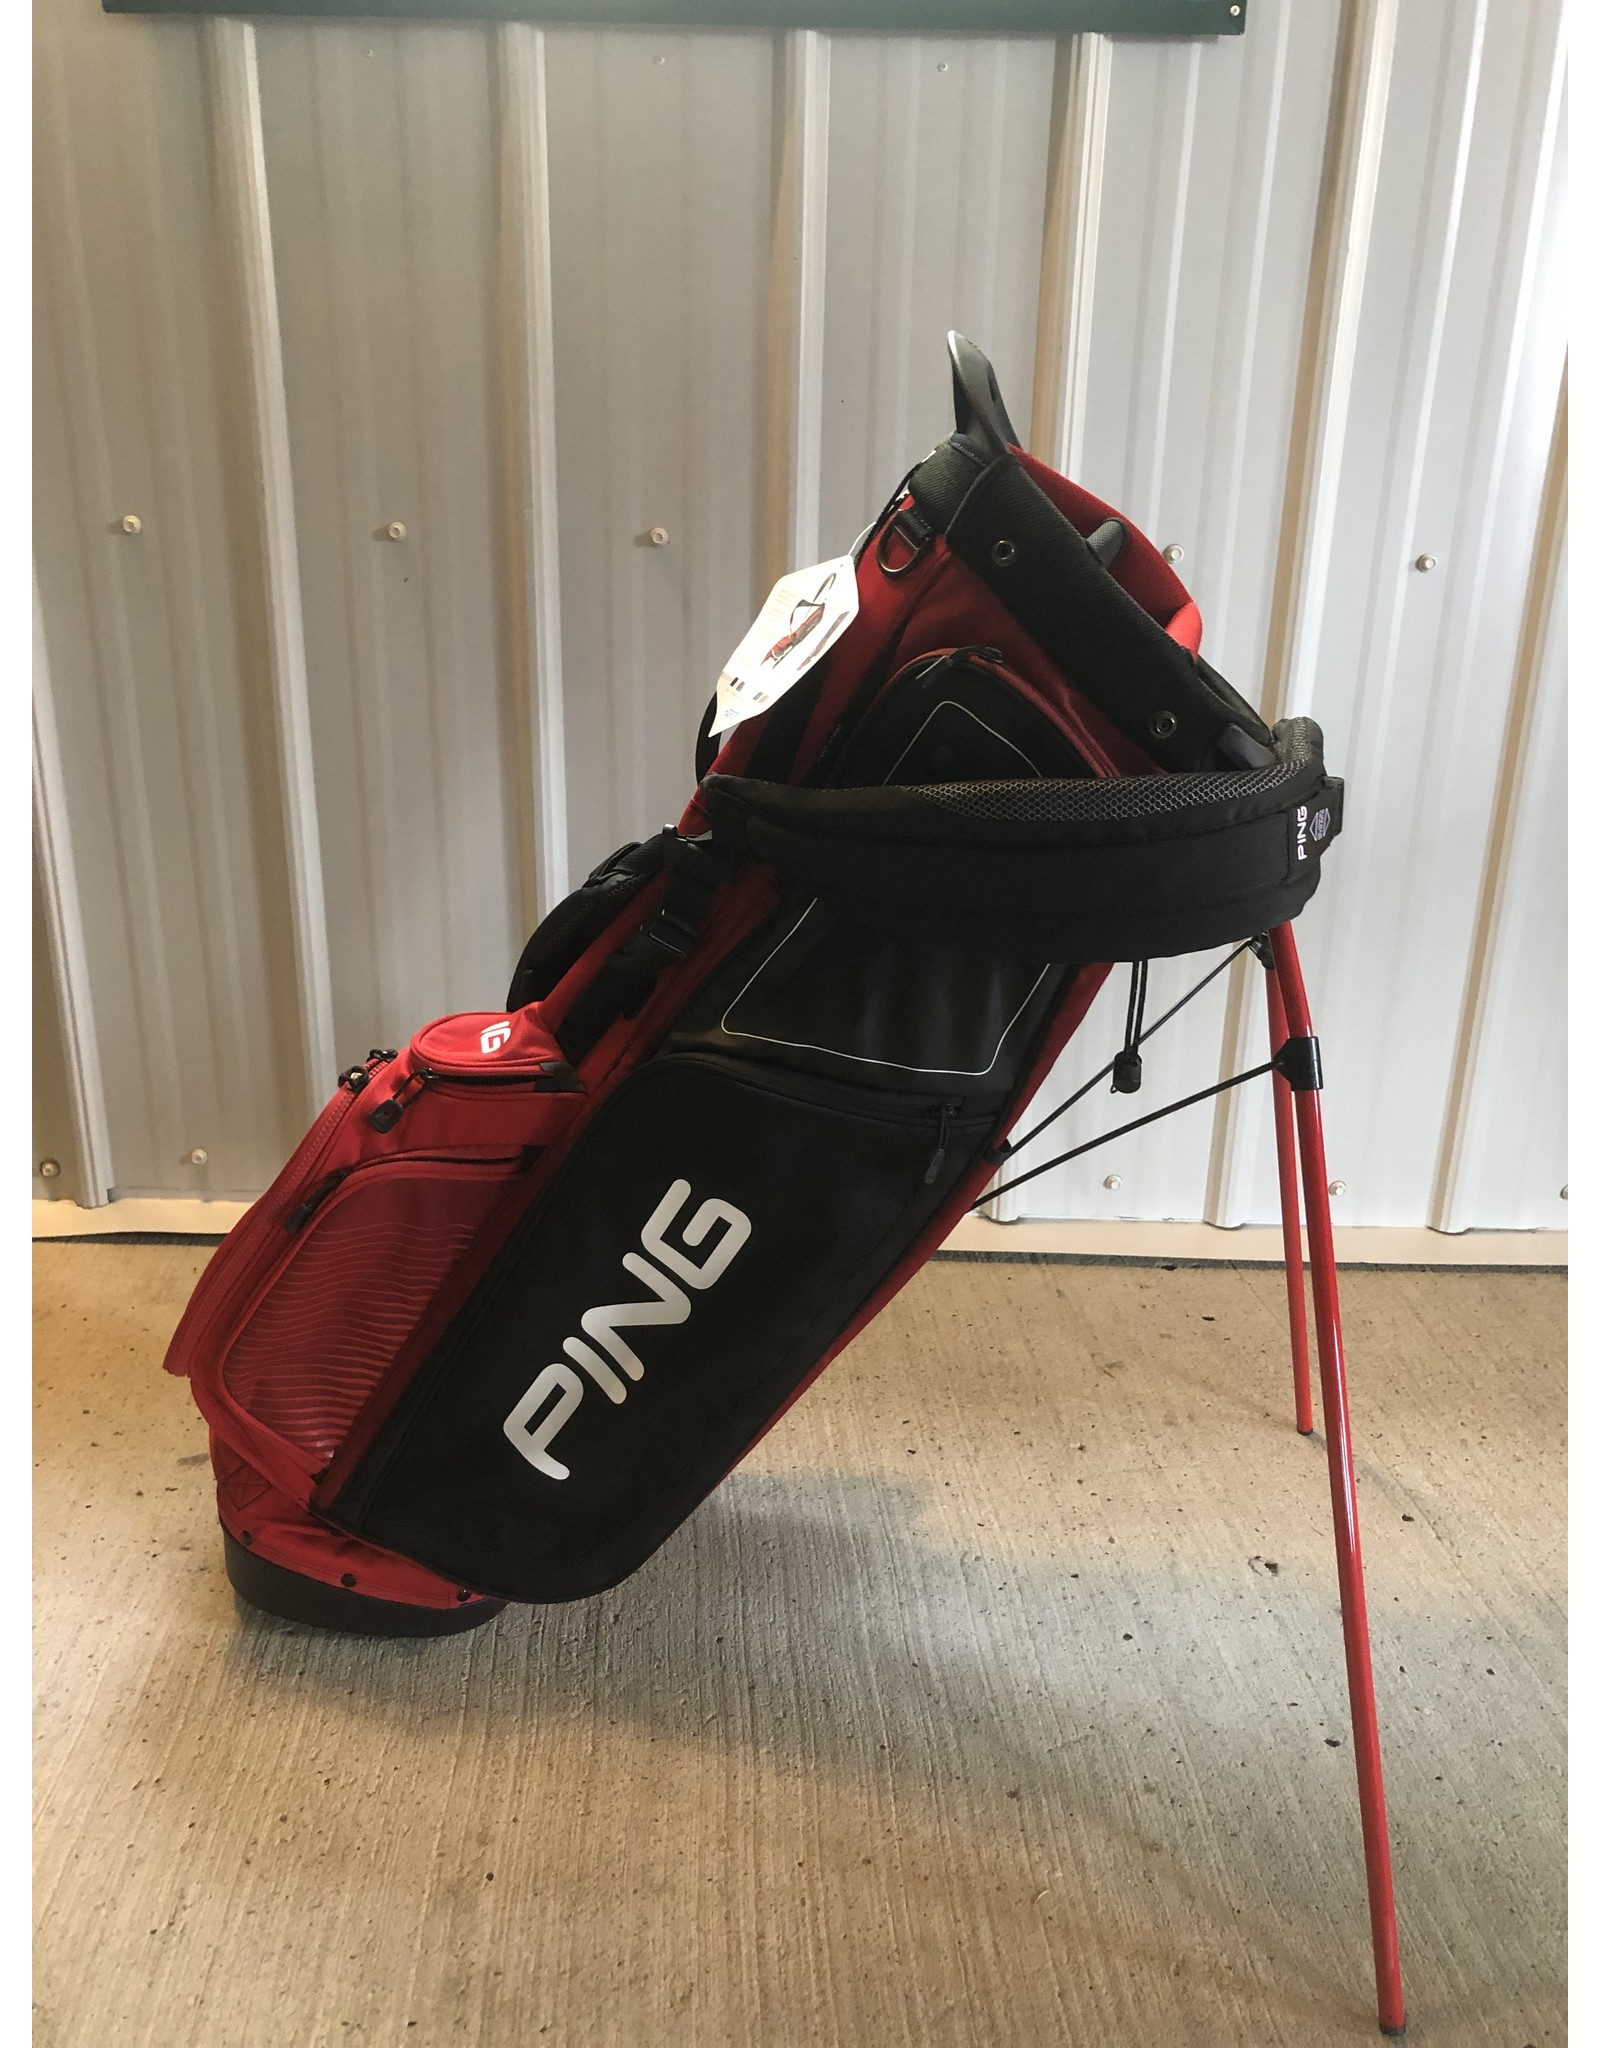 Ping Ping Hoofer 154 Double Strap Bag